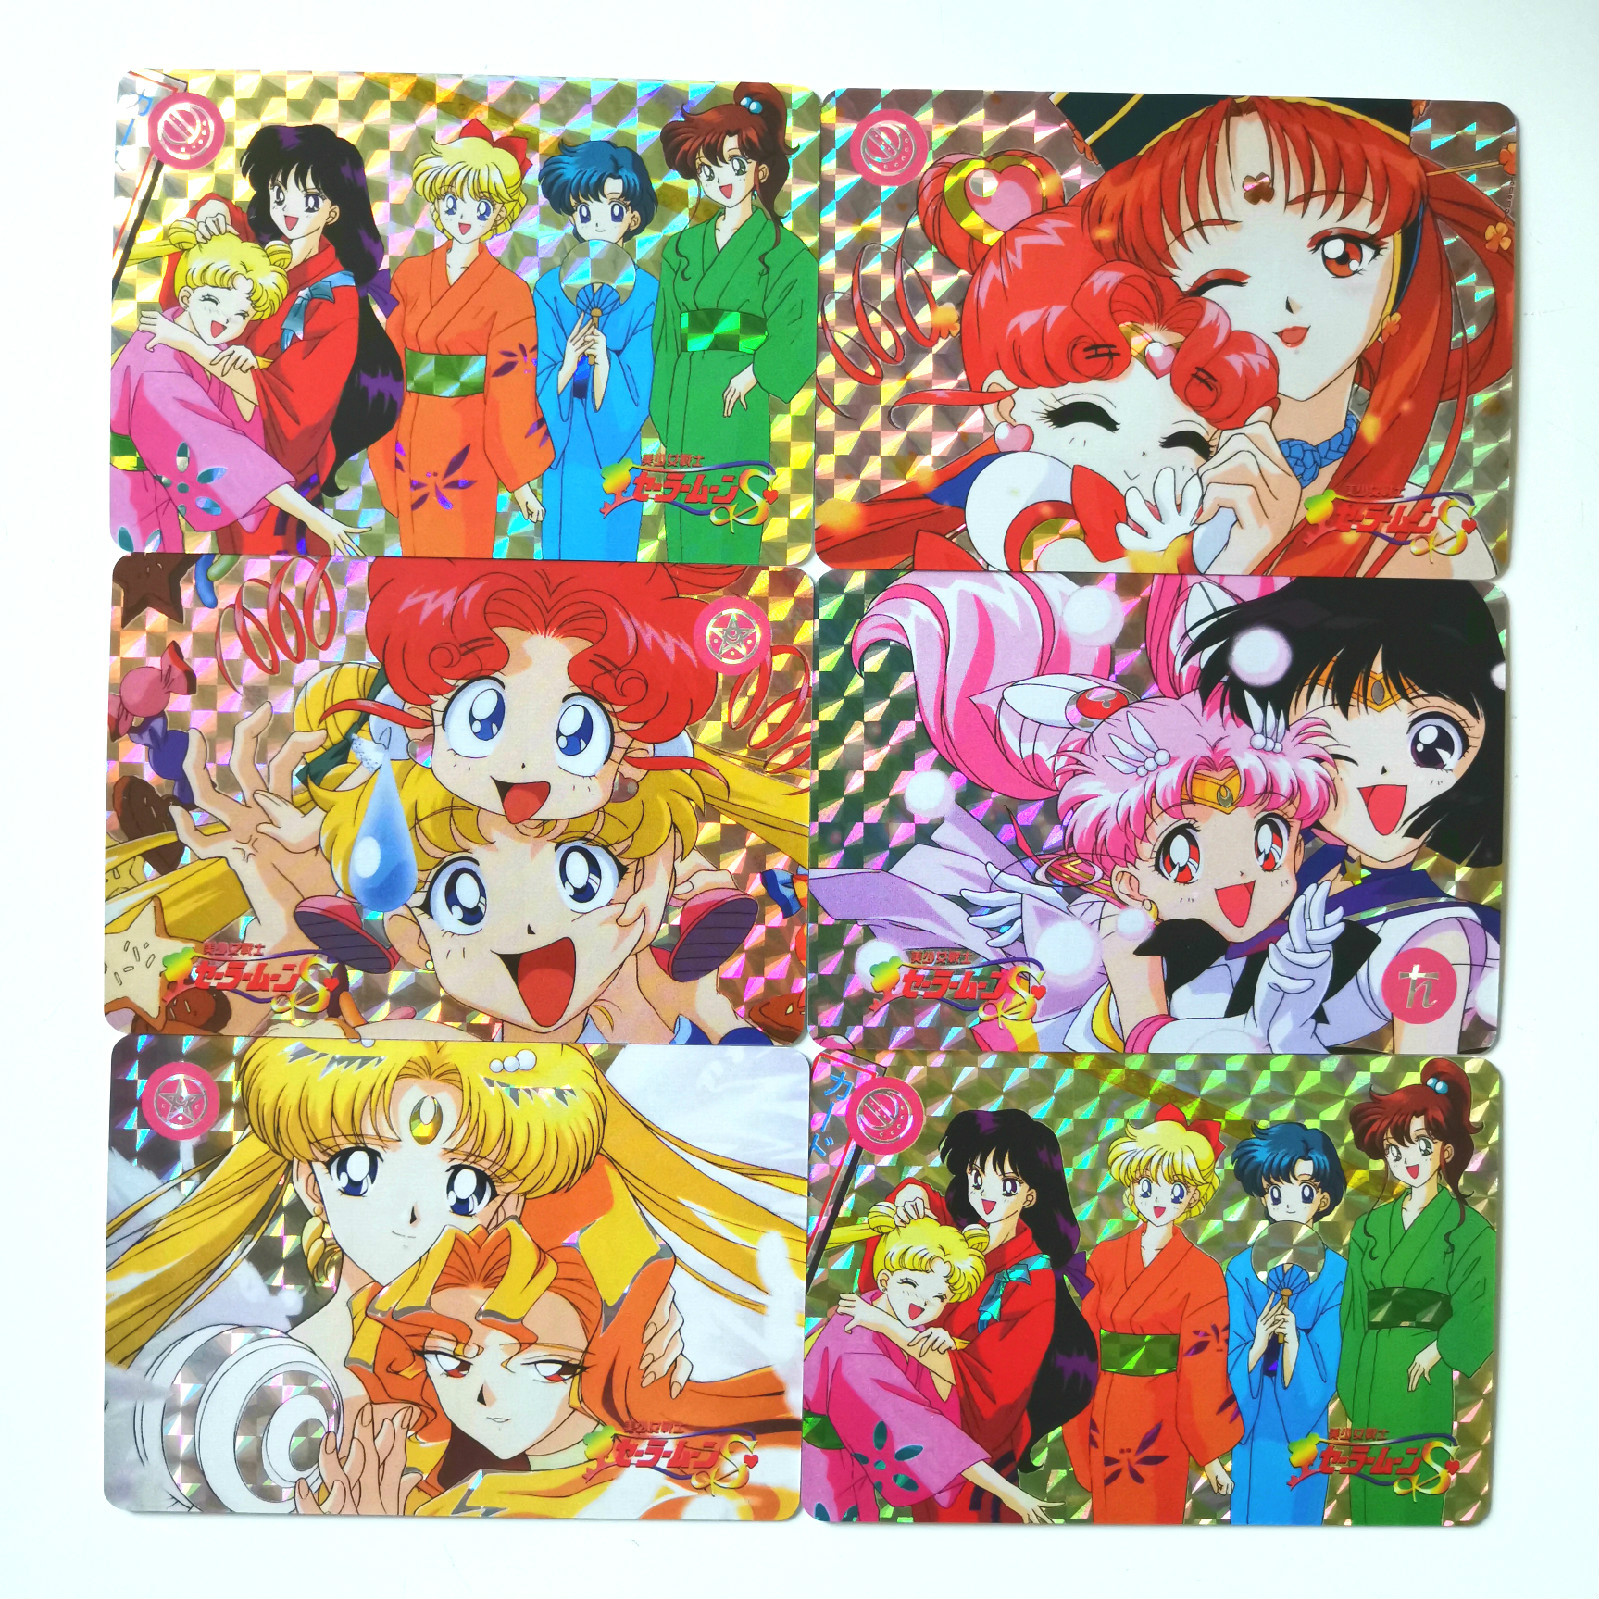 55pcs/set Sailor Moon Toys Hobbies Hobby Collectibles Game Collection Anime Cards